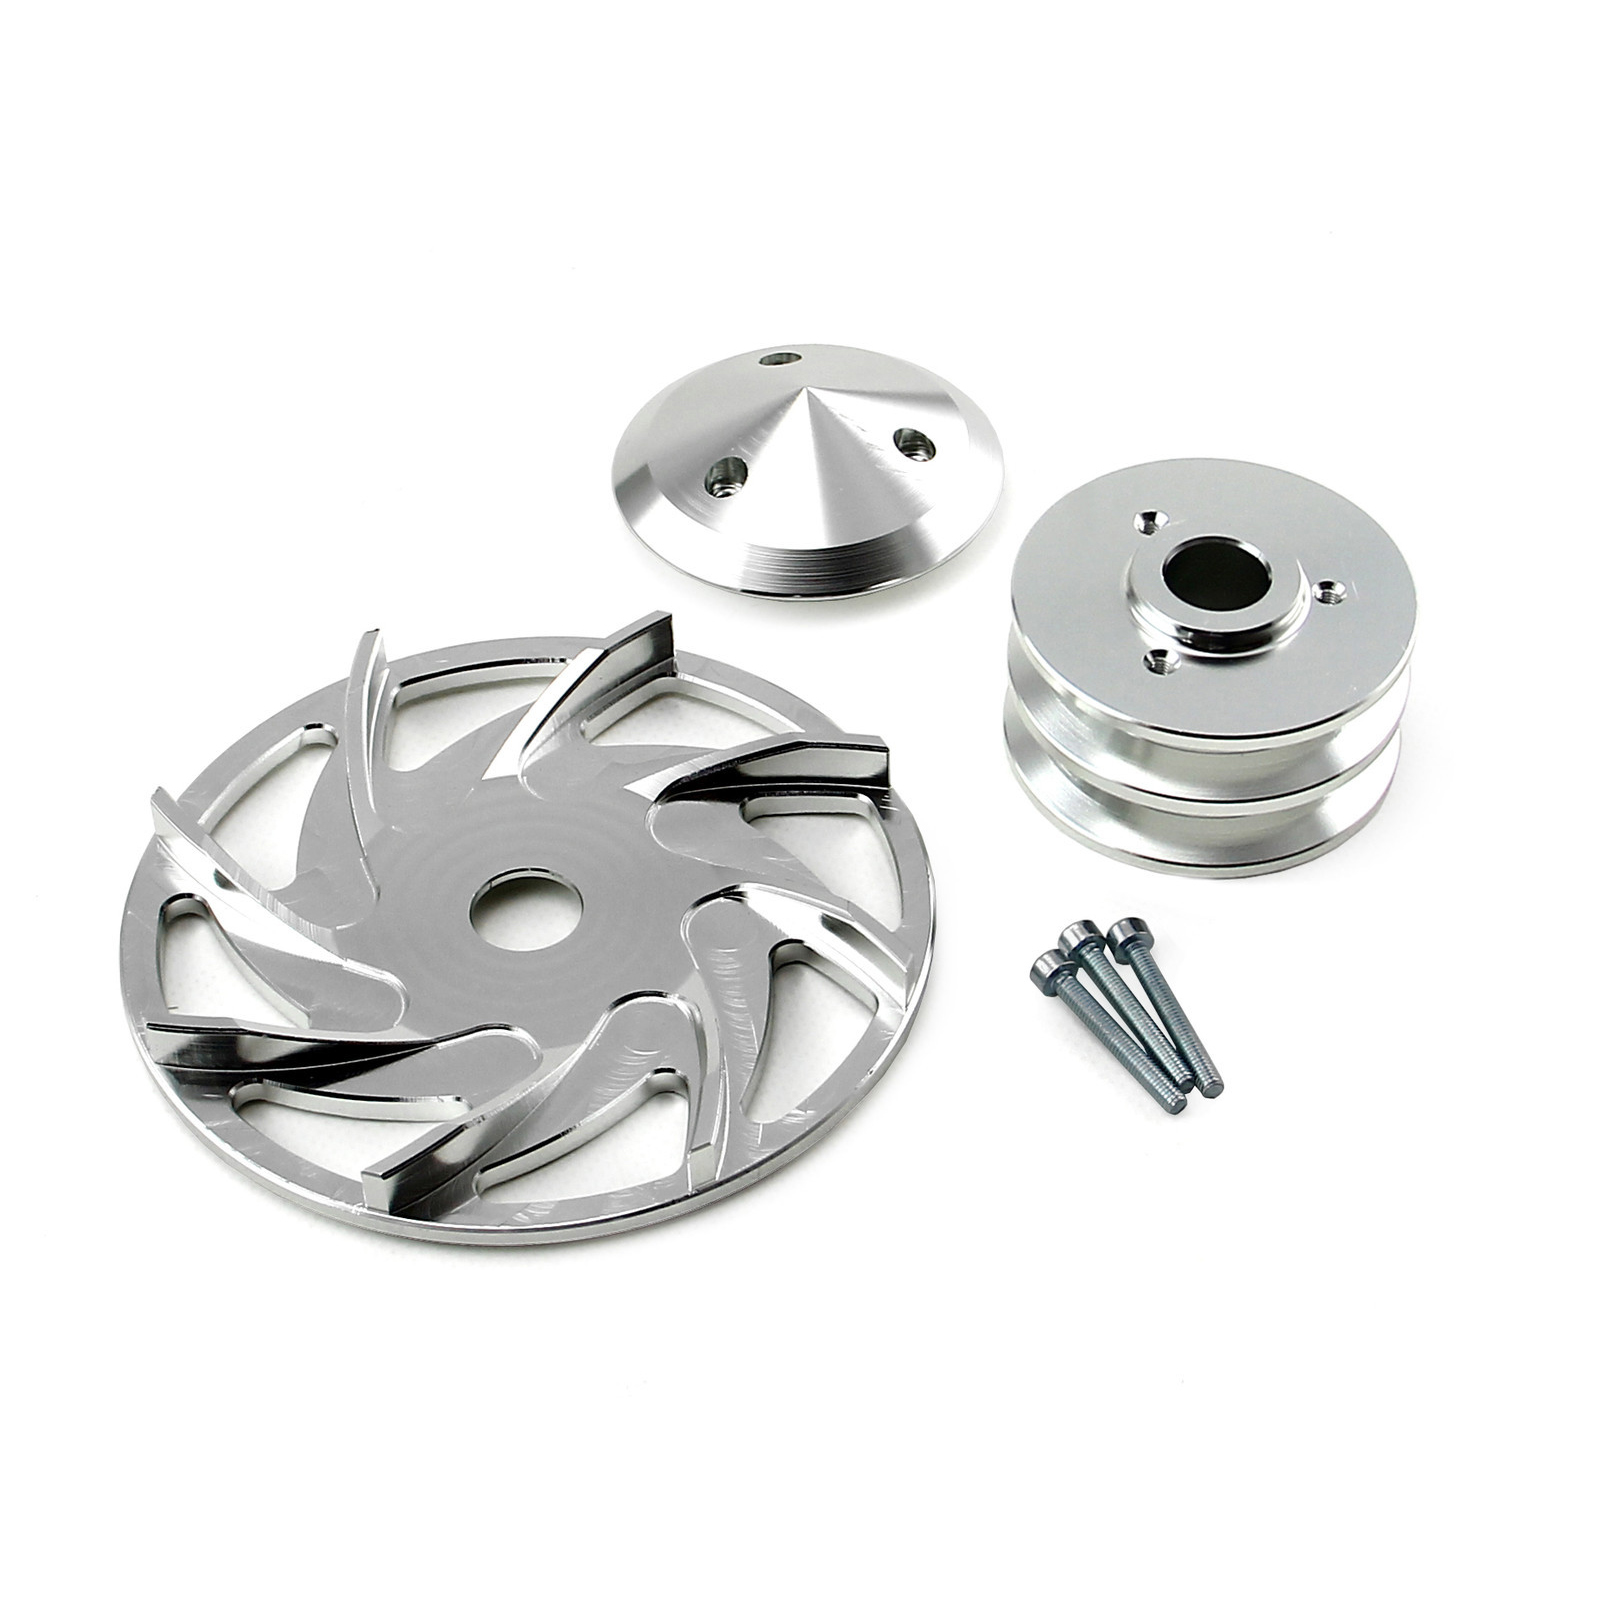 Universal Chevy Ford Dual V Groove Silver Billet Alternator Pulley and Fan Kit